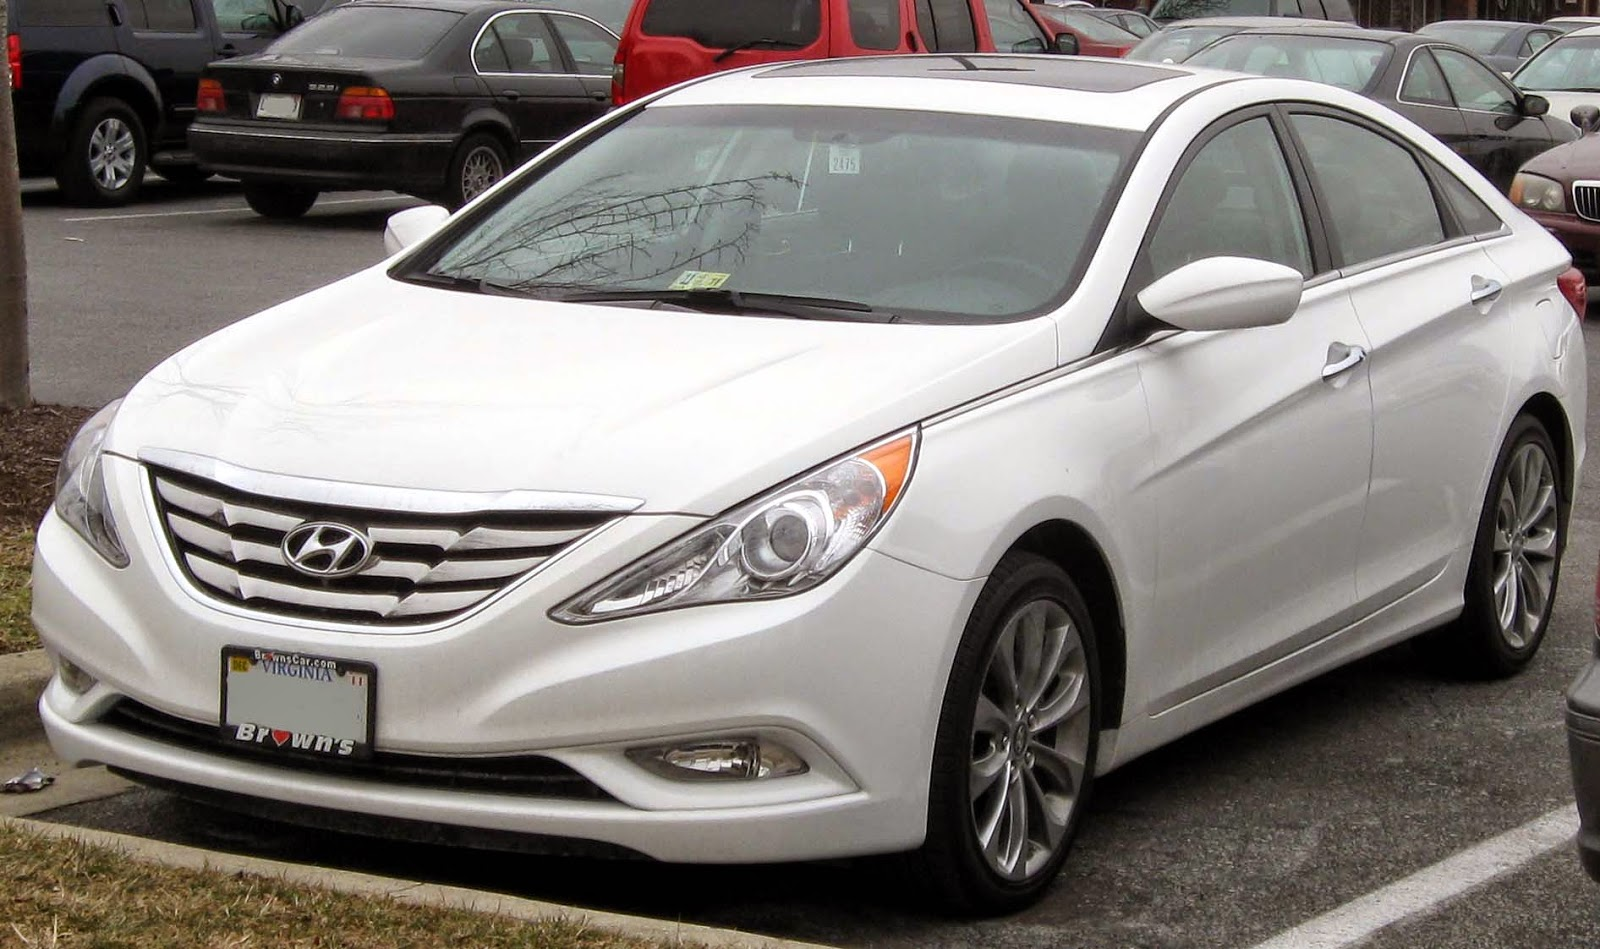 The 6th Generation Hyundai Sonata was awarded 'Top Safety Pick' from Insurance Institute for Highway Safety